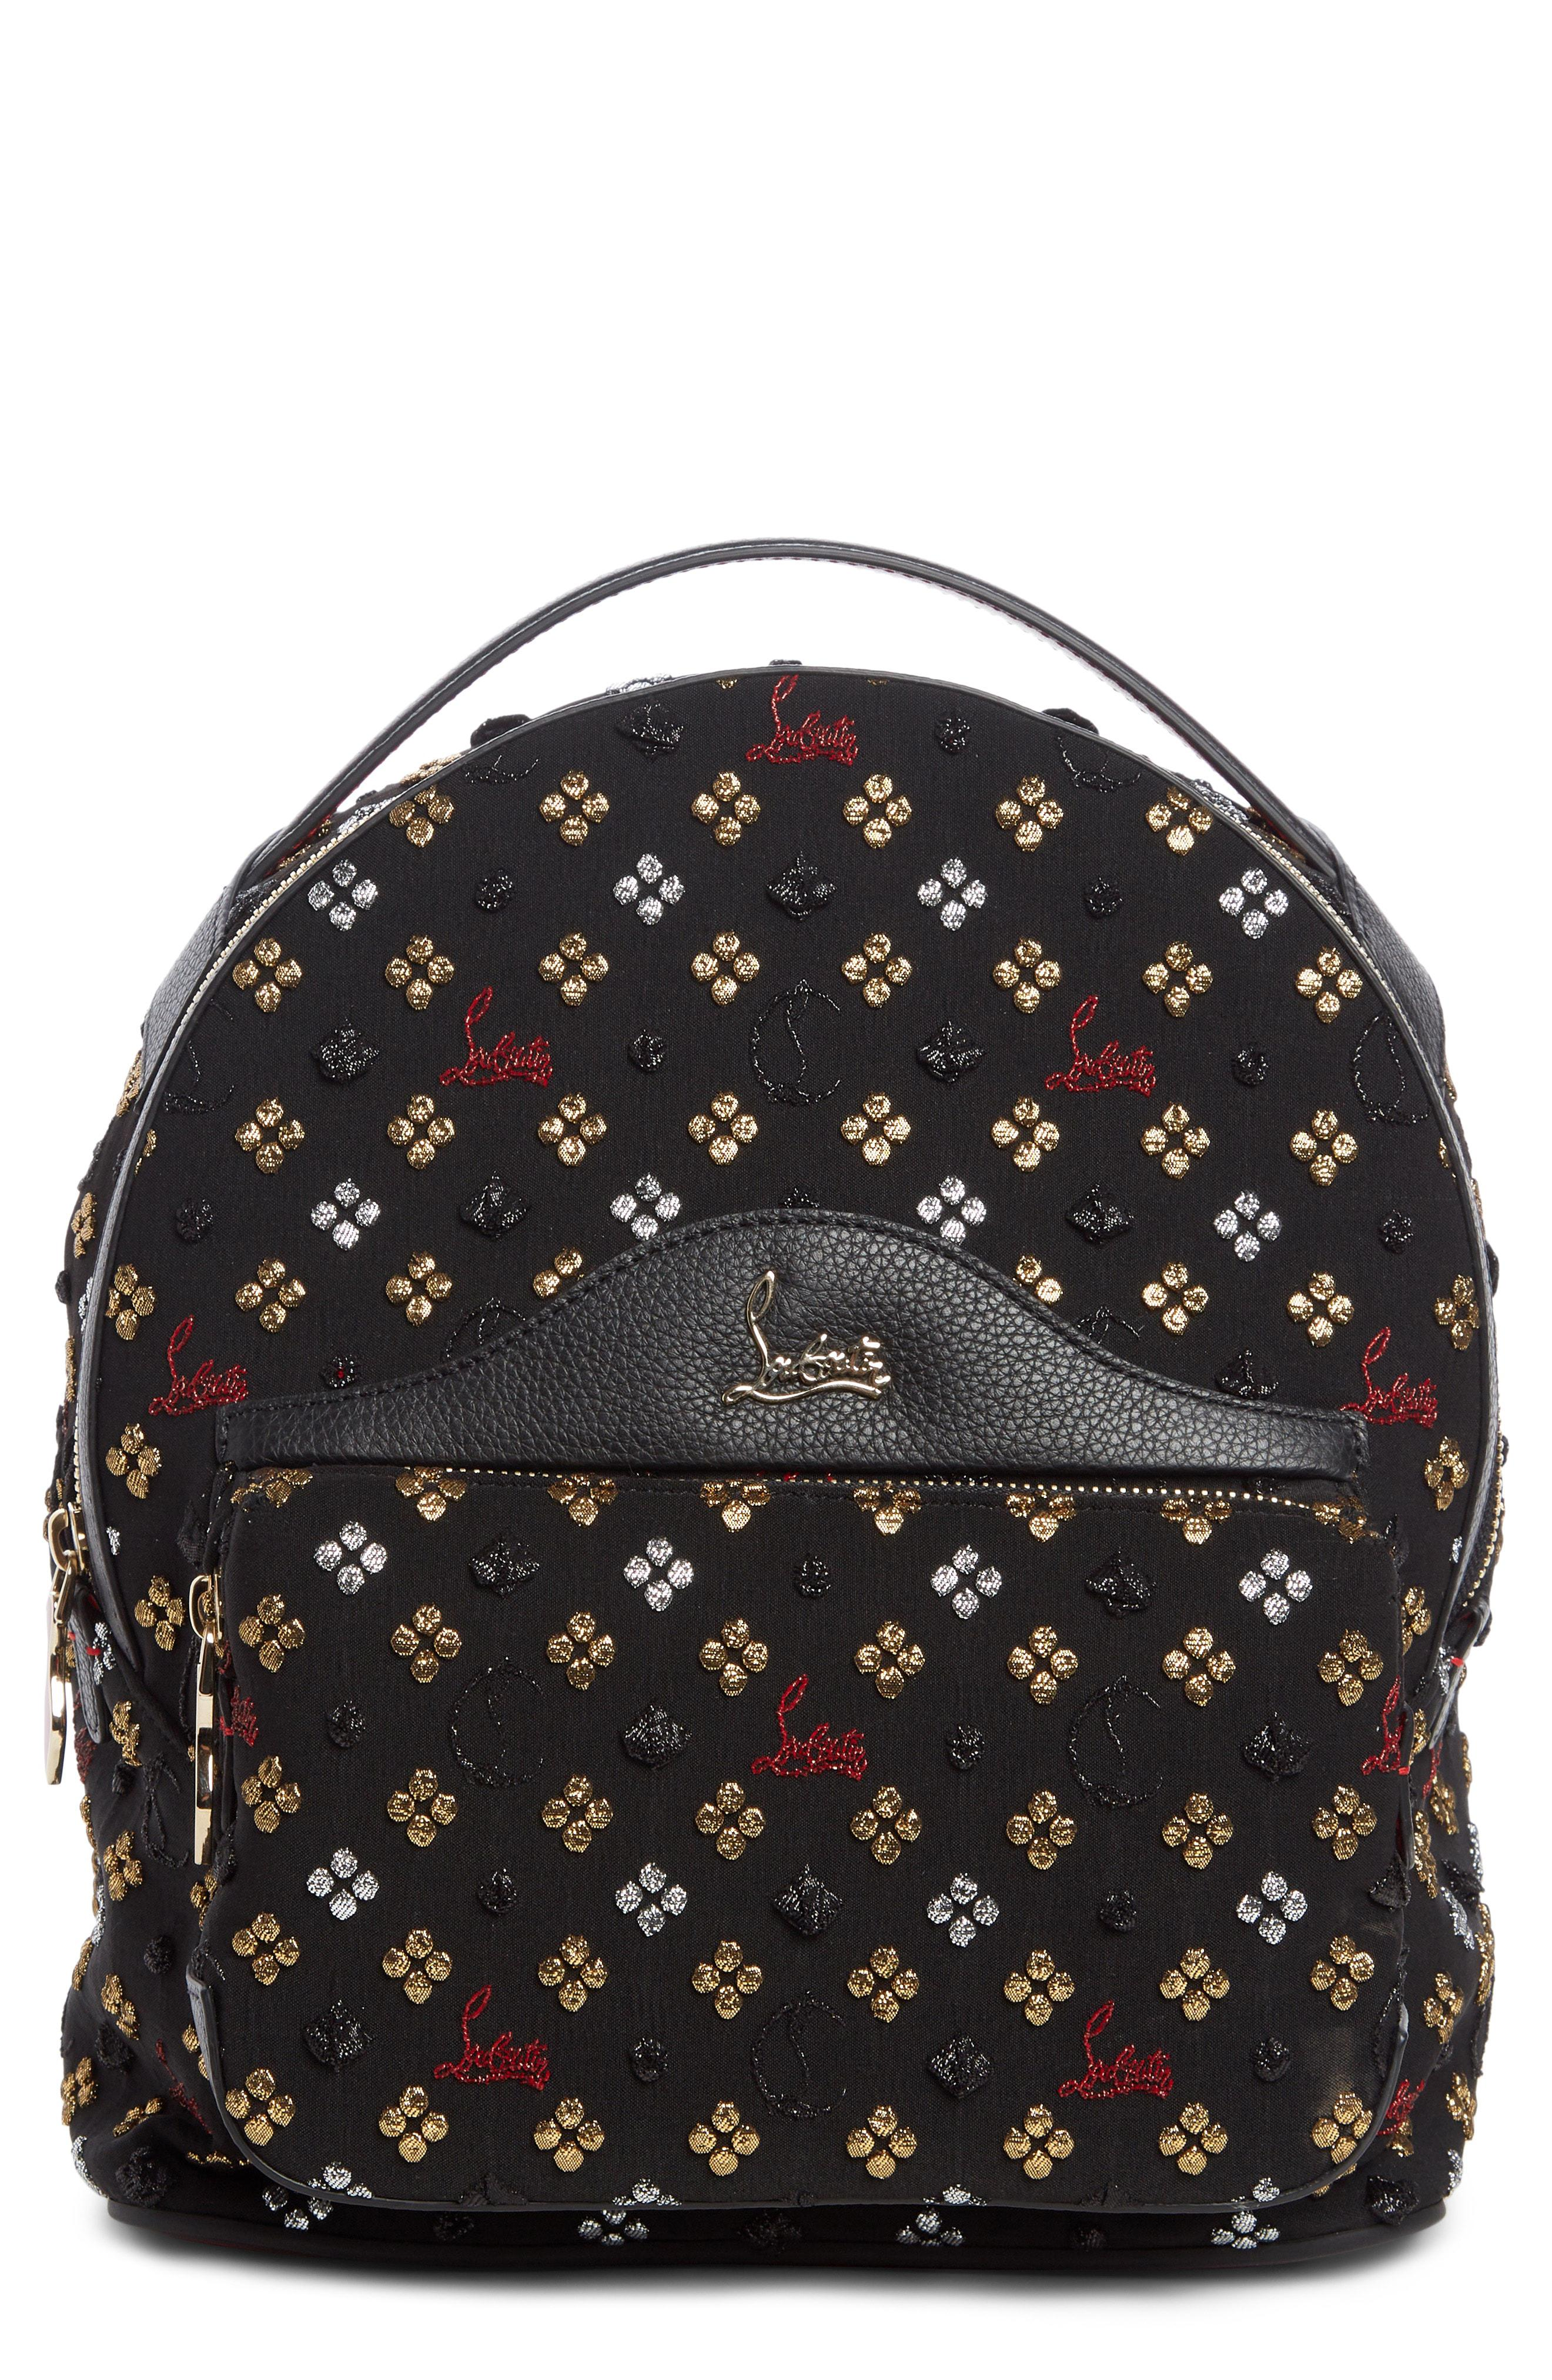 ba7bdb0dce6 Christian Louboutin Small Backloubi Metallic Jacquard Backpack -